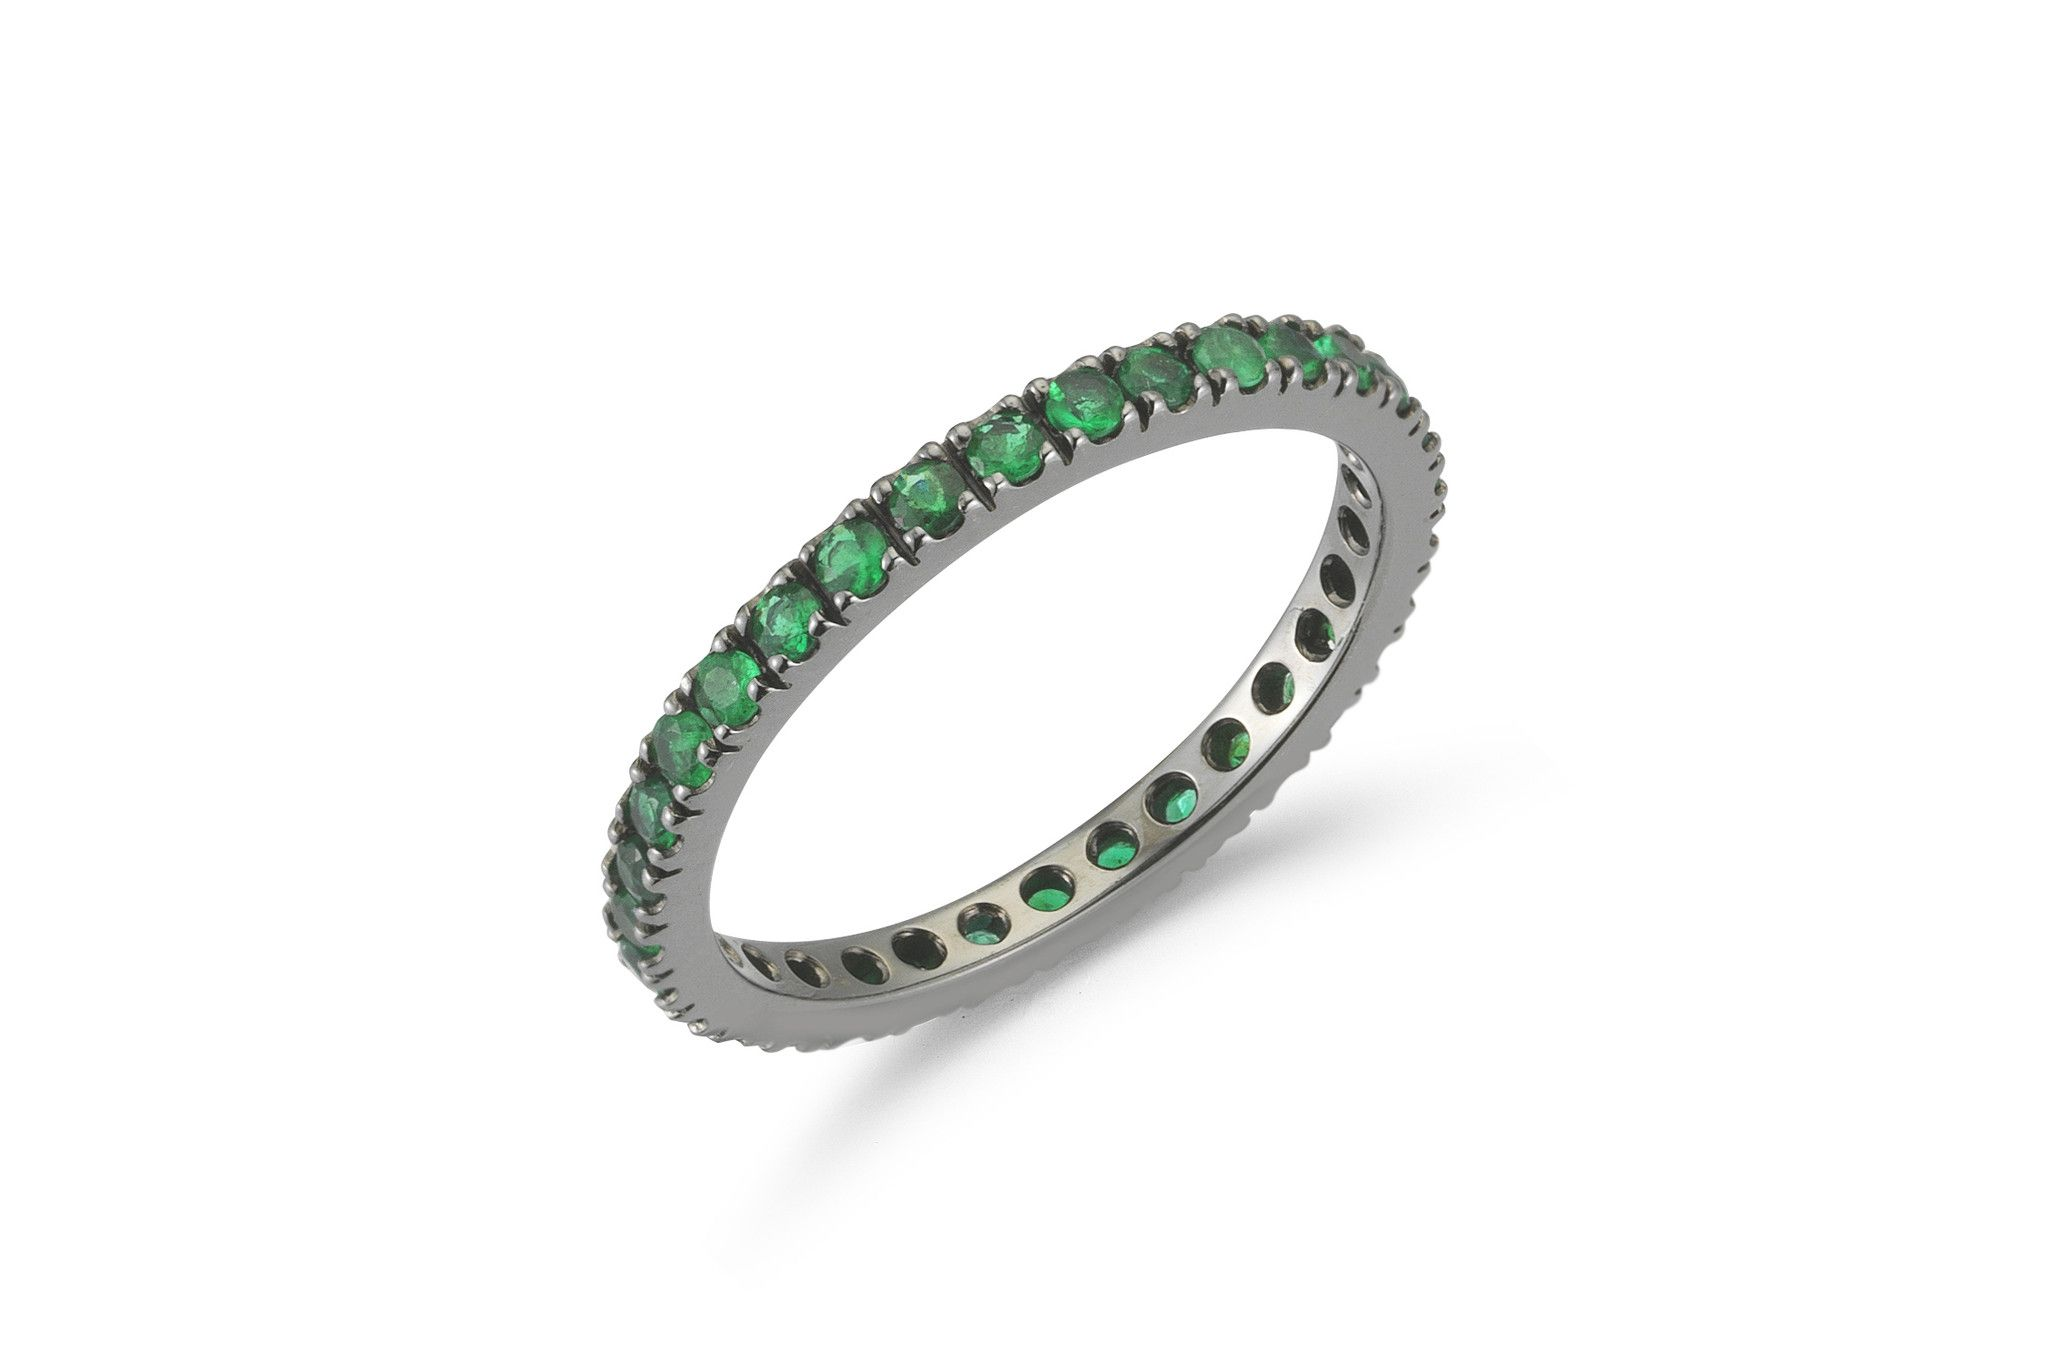 "Now available on our store: A & Furst ""France... Check it out here! http://afjewelers.com/products/a-furst-france-eternity-band-ring-with-french-setting-emeralds-all-around-18k-blackened-gold?utm_campaign=social_autopilot&utm_source=pin&utm_medium=pin"